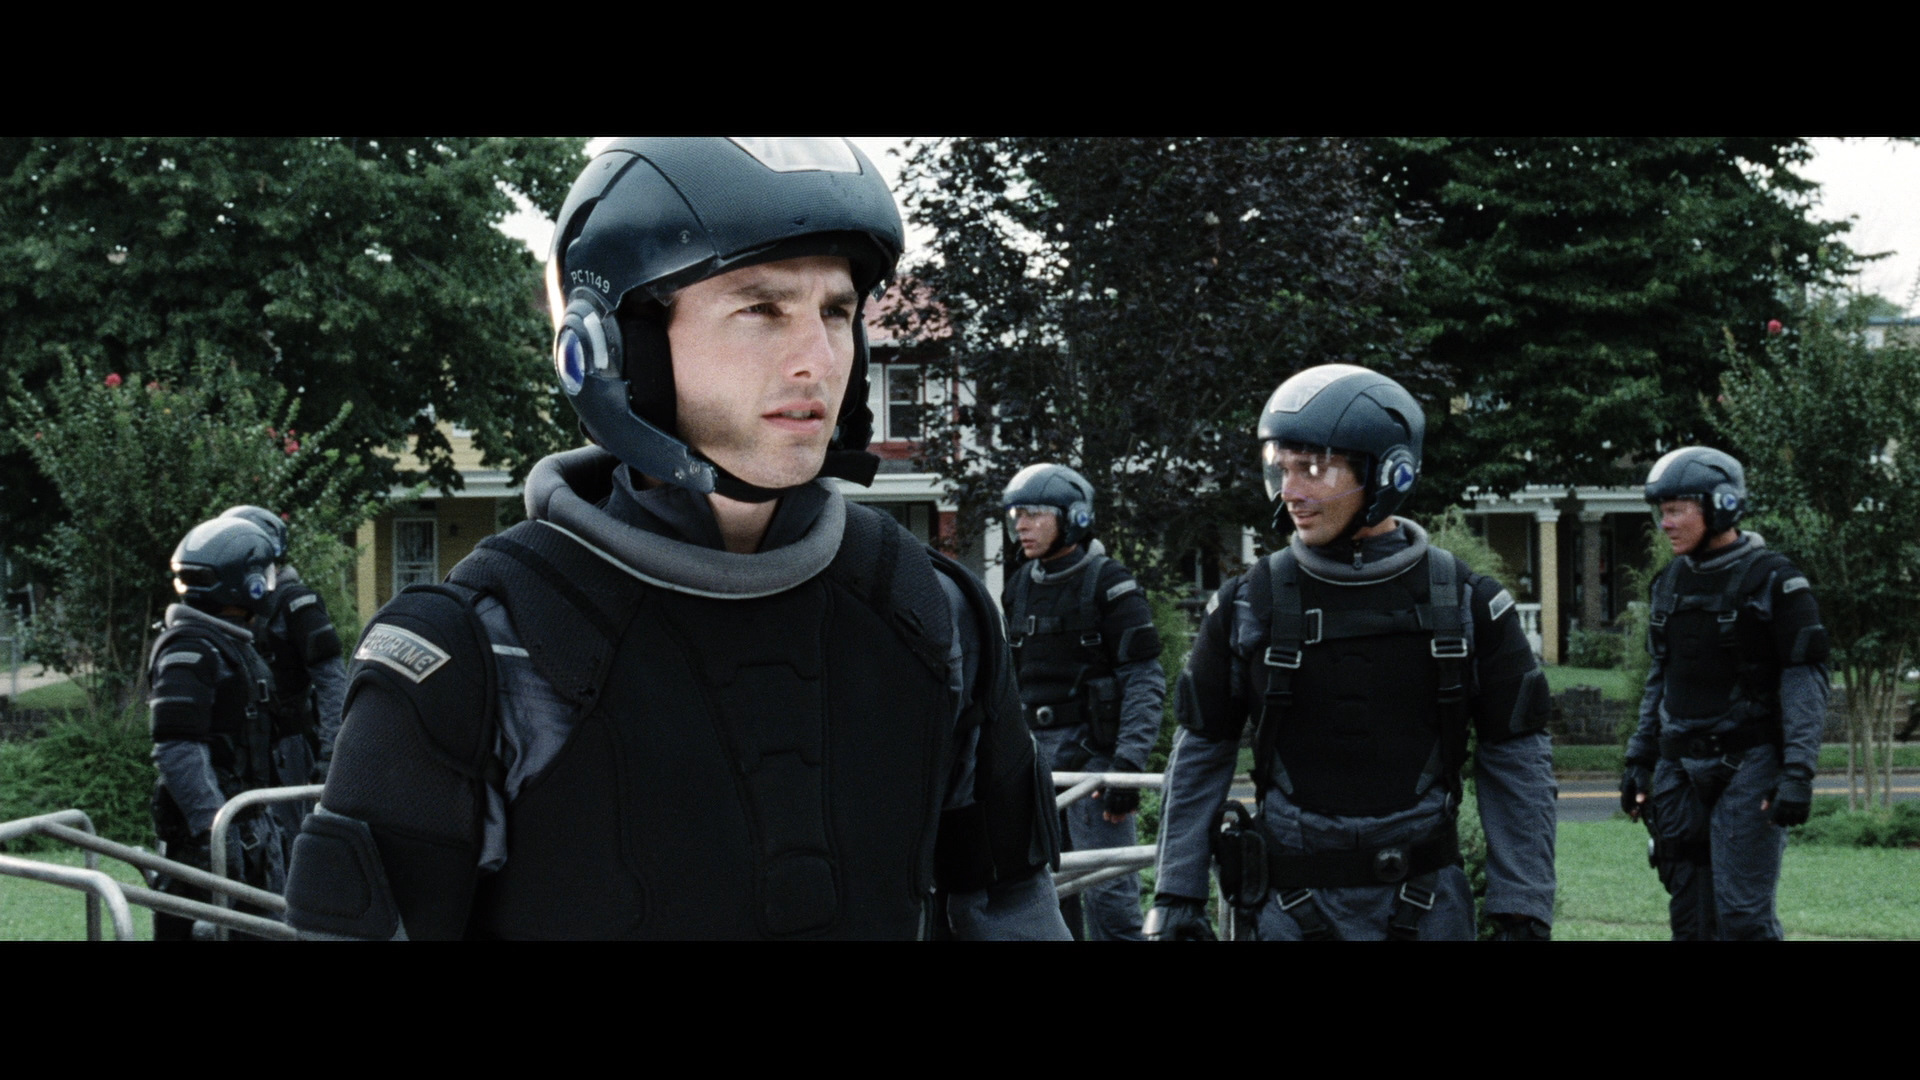 Police Cop Car Live Wallpaper Minority Report Freedom Or Safety Let There Be Movies